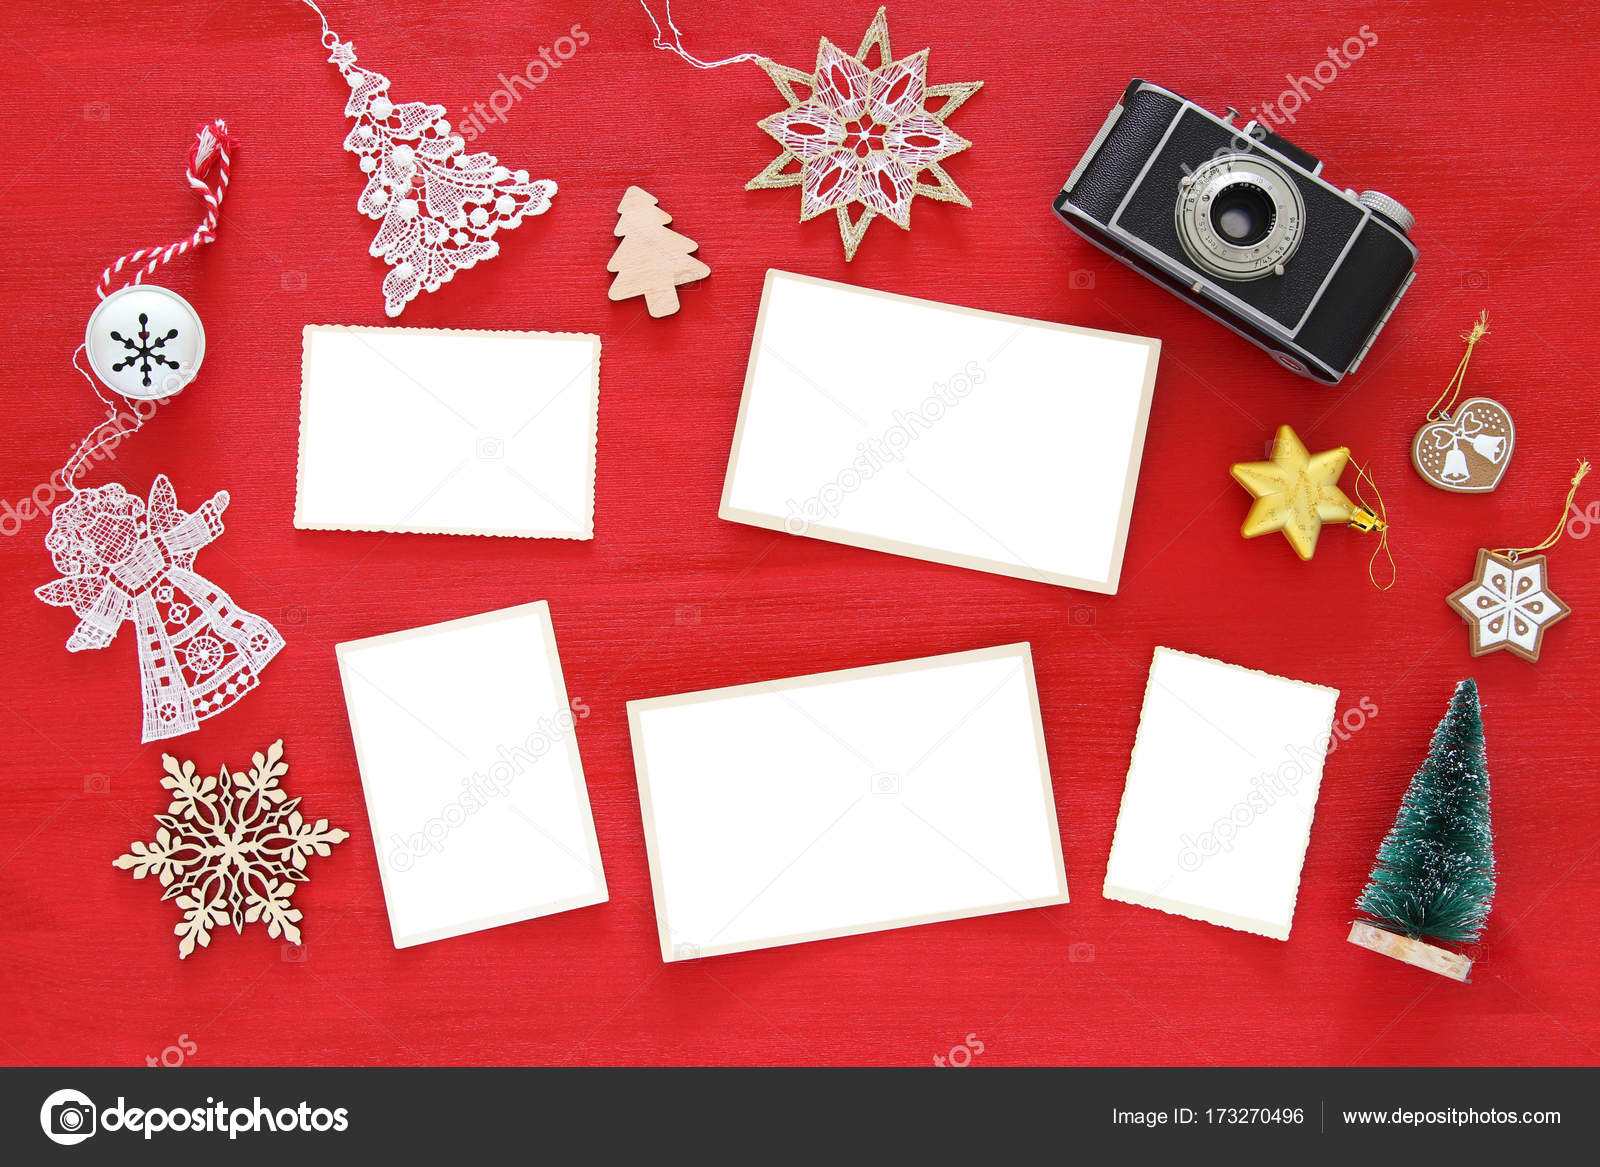 Top view image of christmas festive decorations next to old camera ...